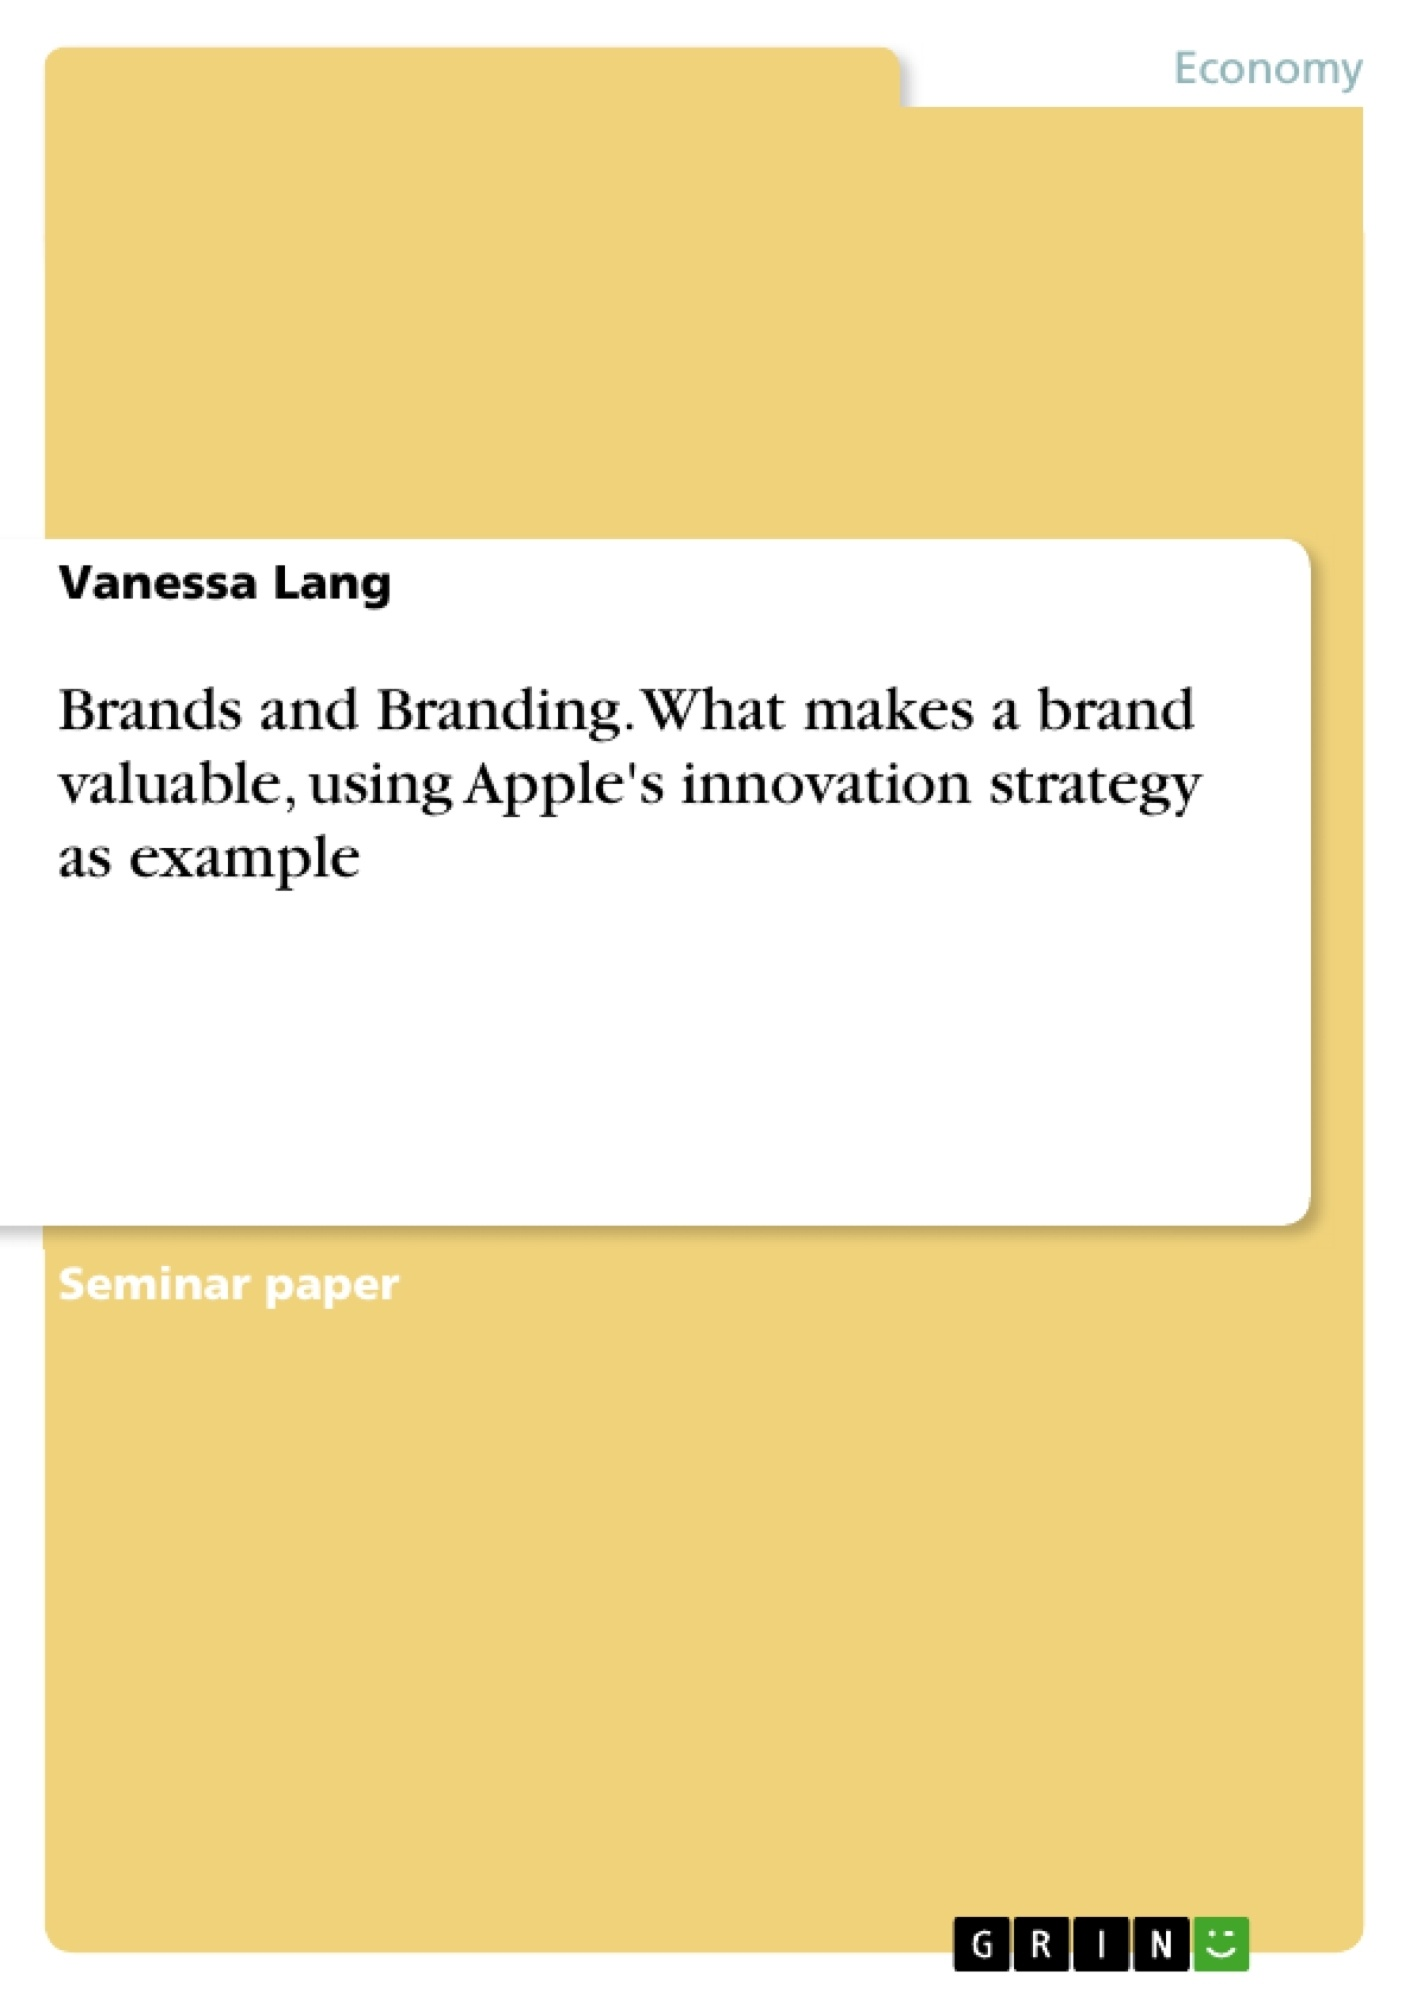 Title: Brands and Branding. What makes a brand valuable, using Apple's innovation strategy as example